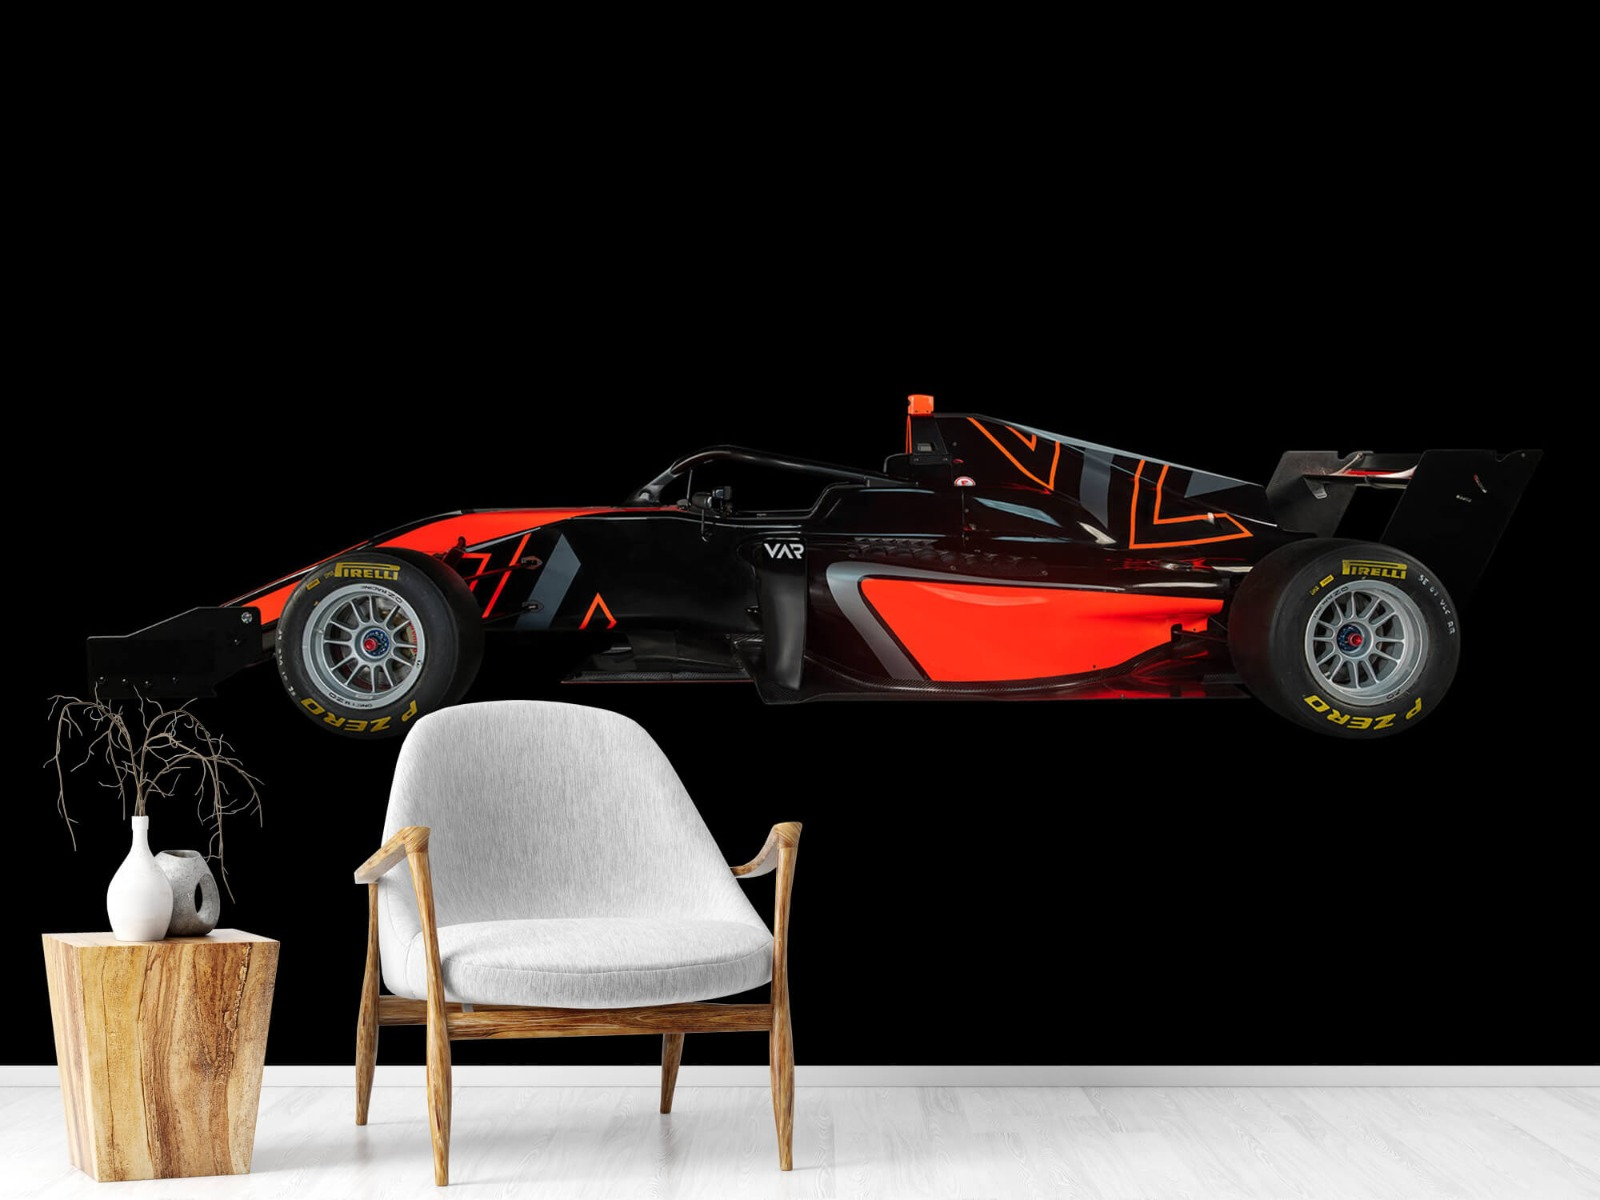 Sportauto's - Formule 3 - Lower side view - dark - Tienerkamer 1